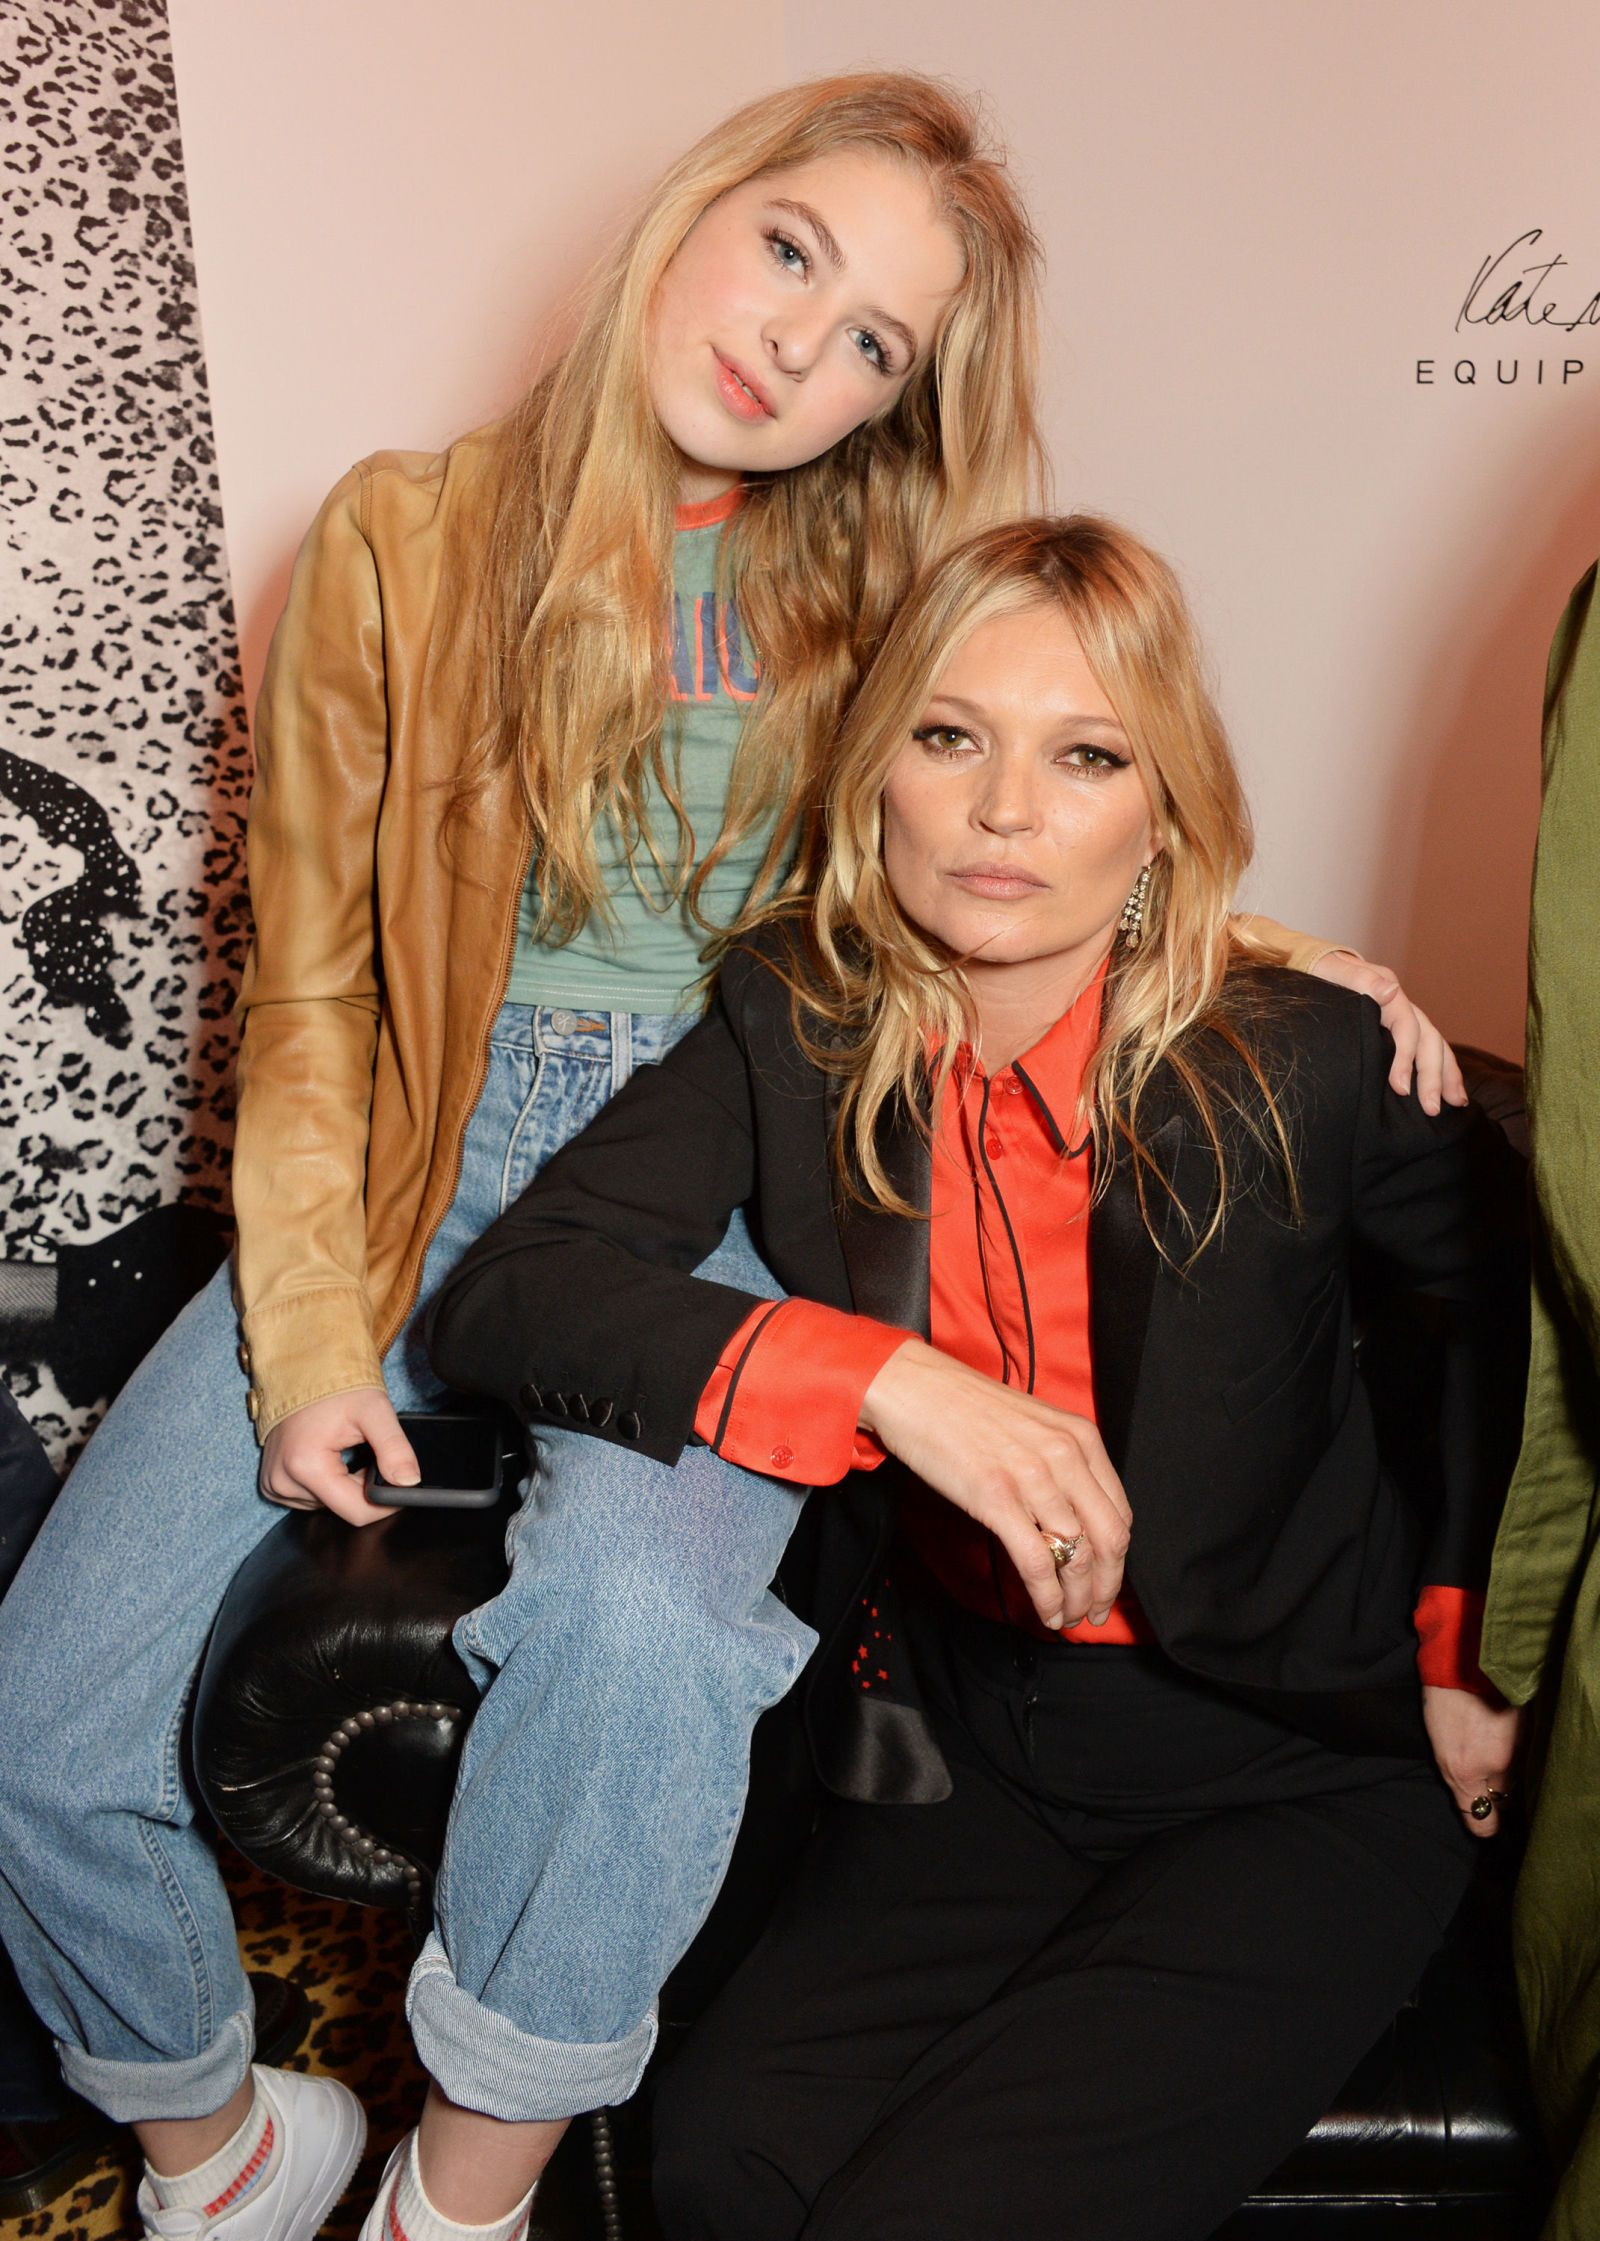 Anais Y Lili the week in parties | kate moss, anais gallagher, moss fashion